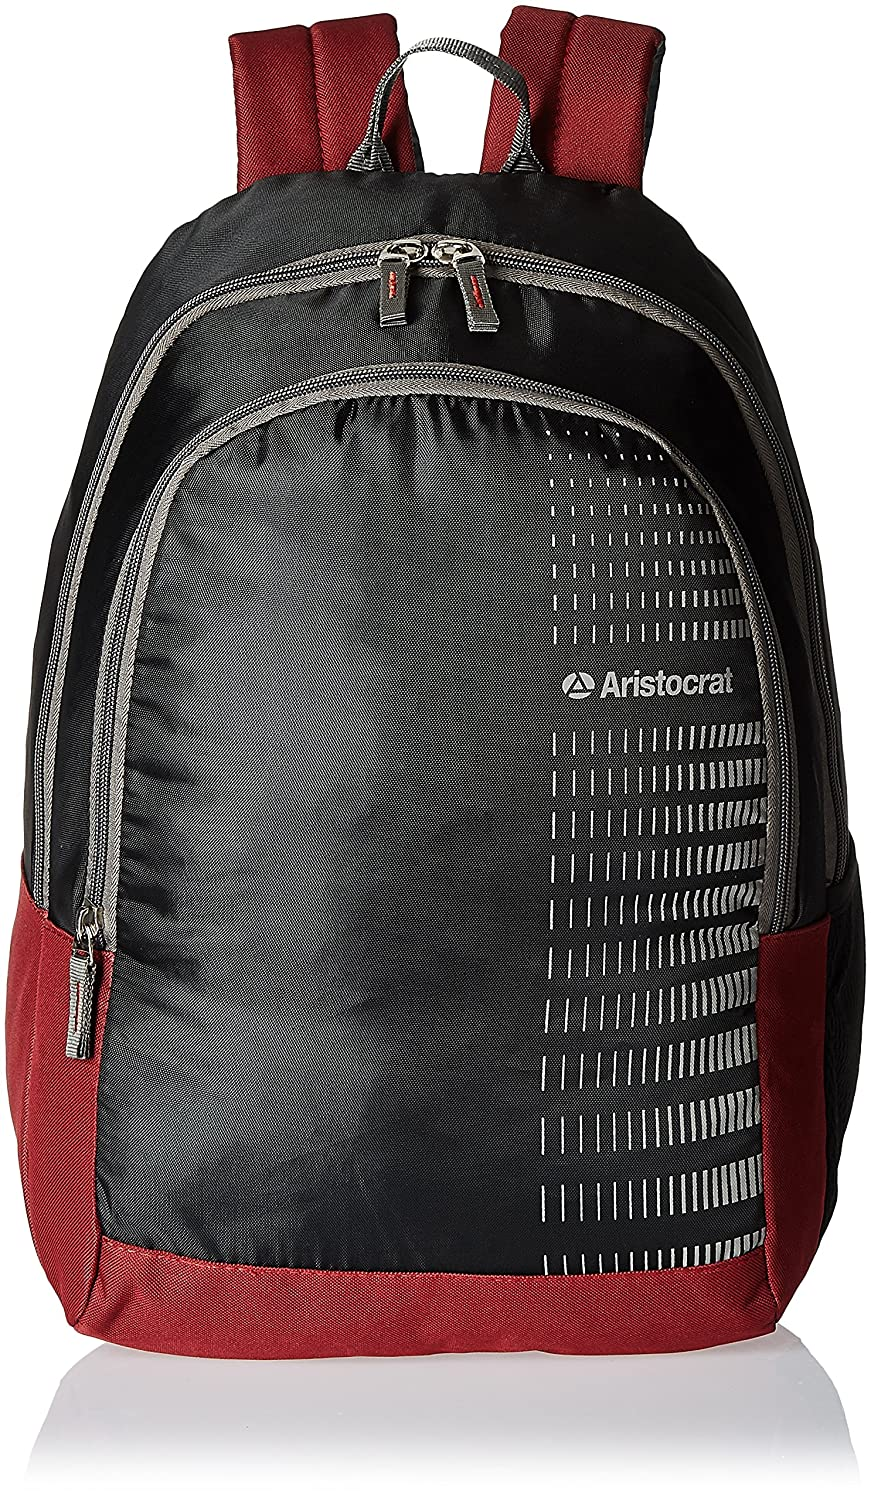 Aristocrat Pep 21 Ltrs Black Casual Backpack  - dealslama.com